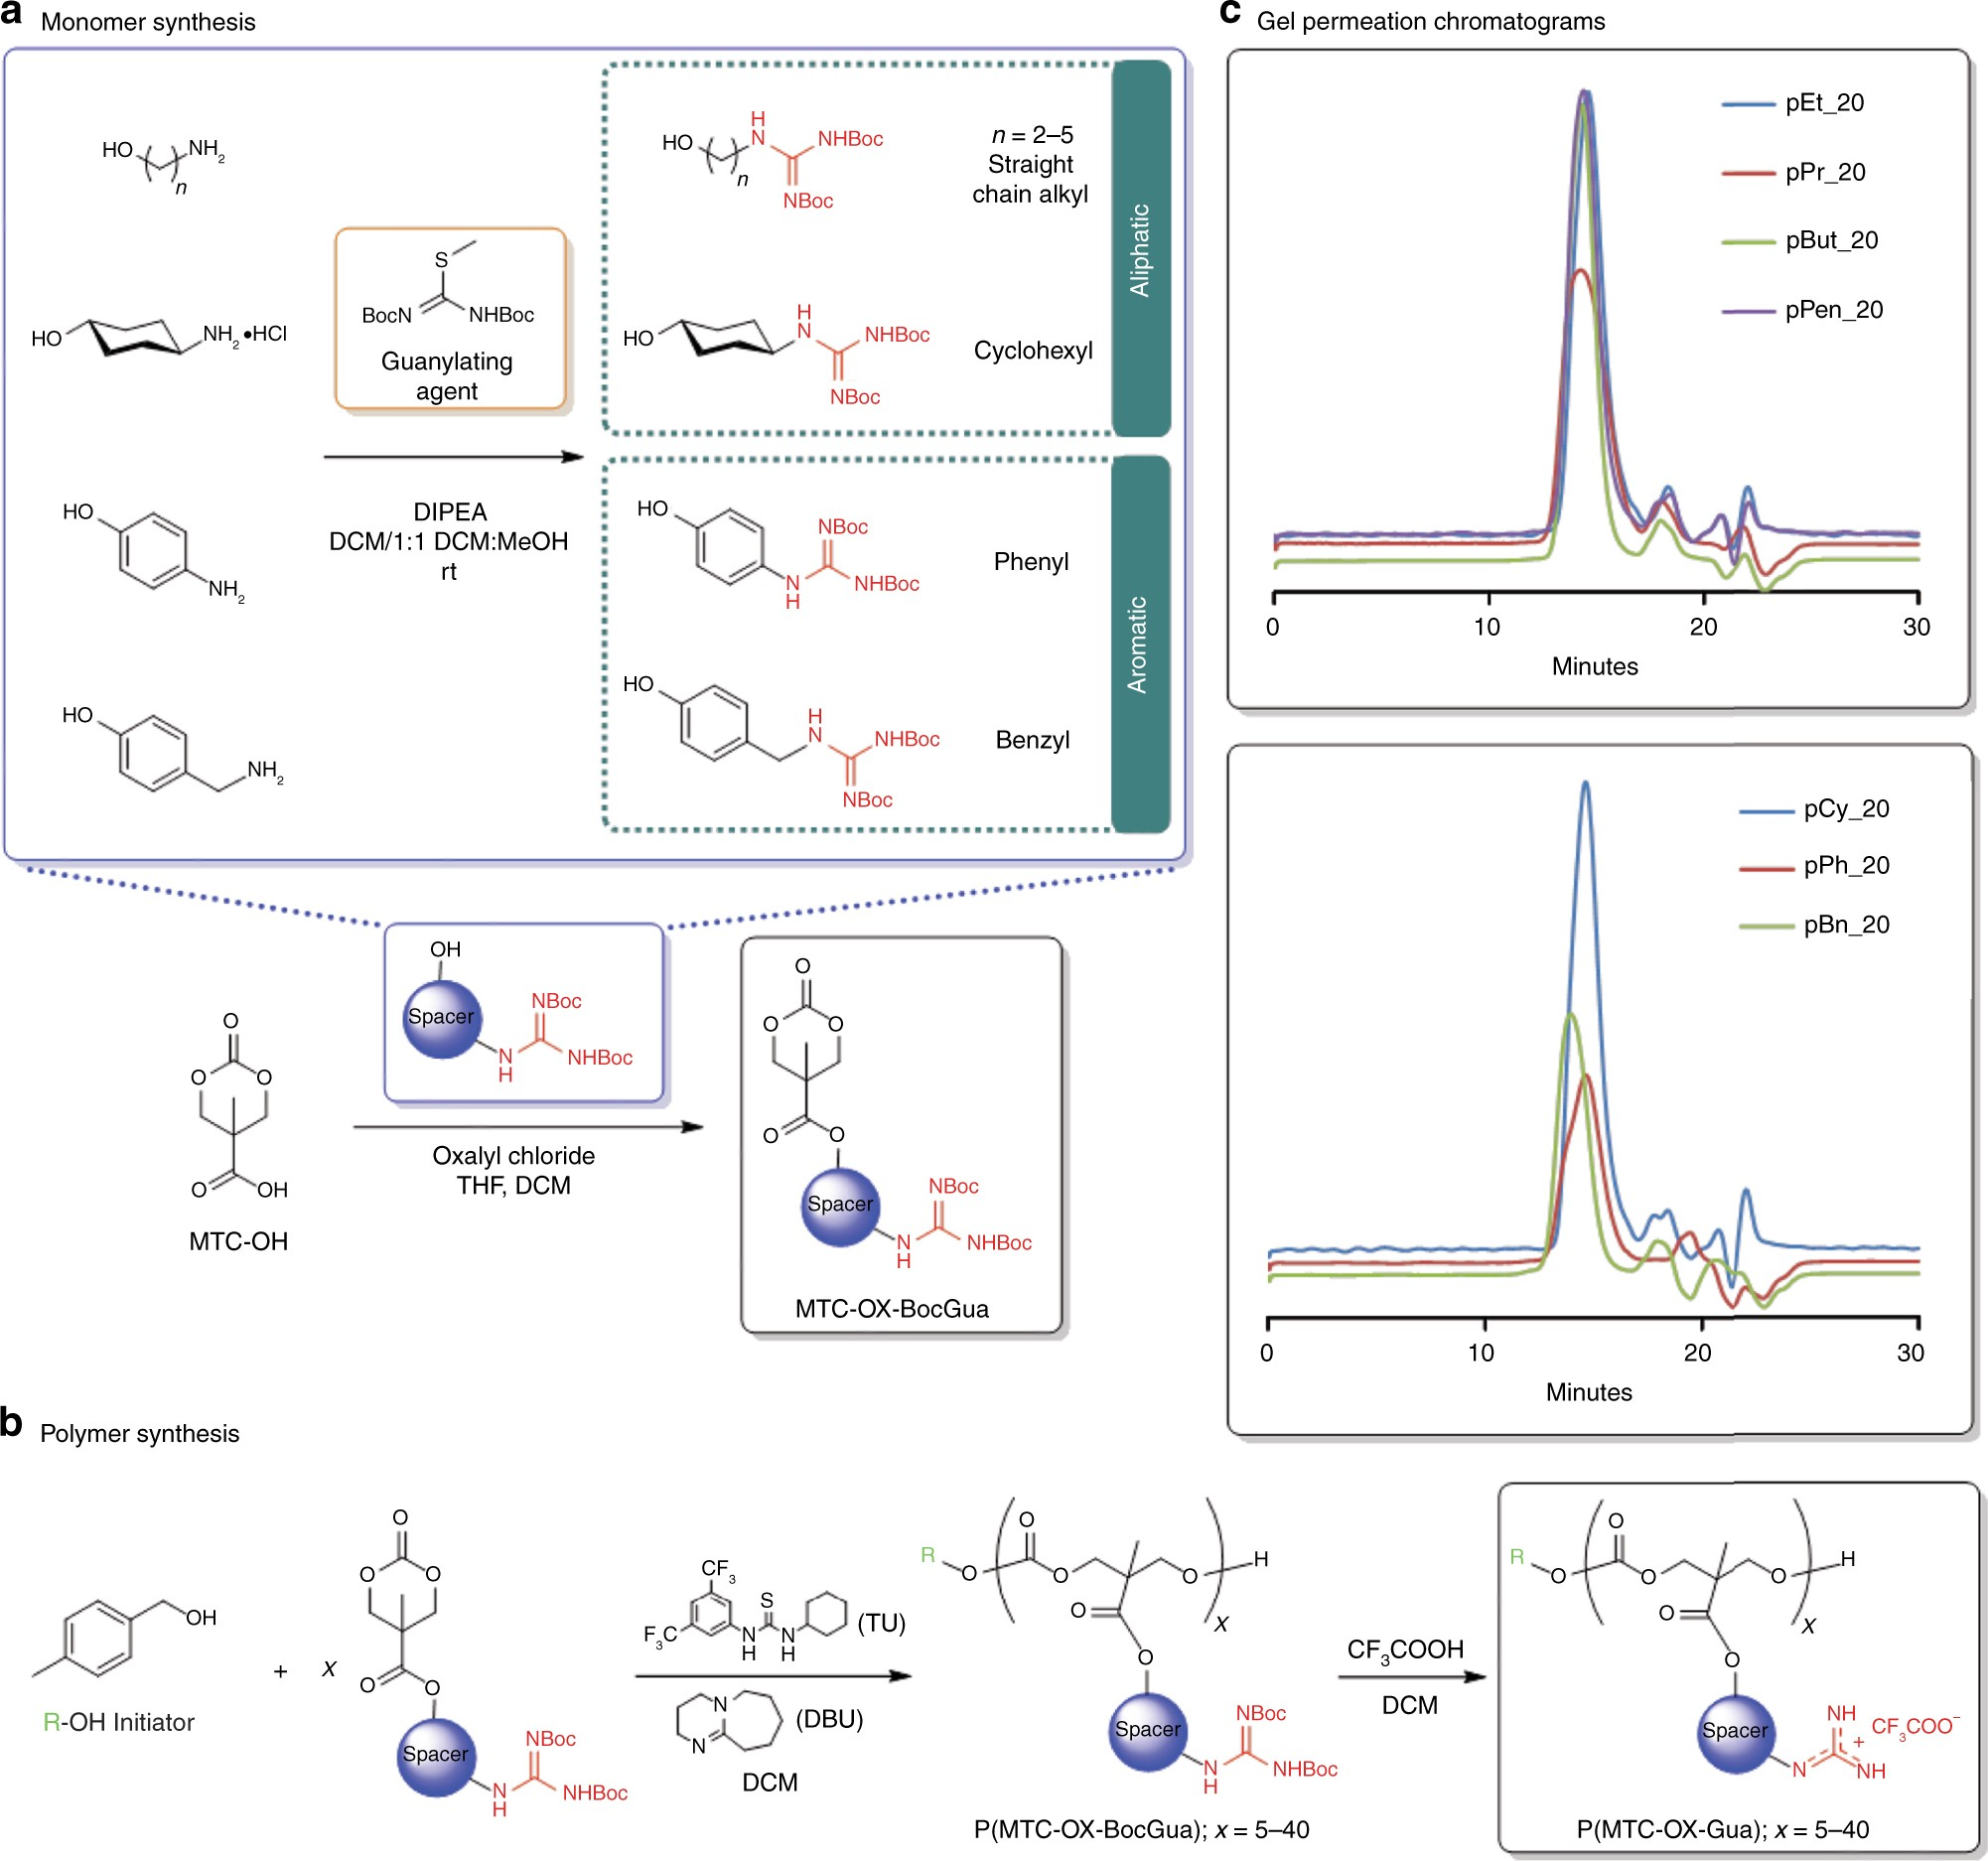 A Macromolecular Approach To Eradicate Multidrug Resistant Bacterial Vacuum Flash Ox 500 Infections While Mitigating Drug Resistance Onset Nature Communications